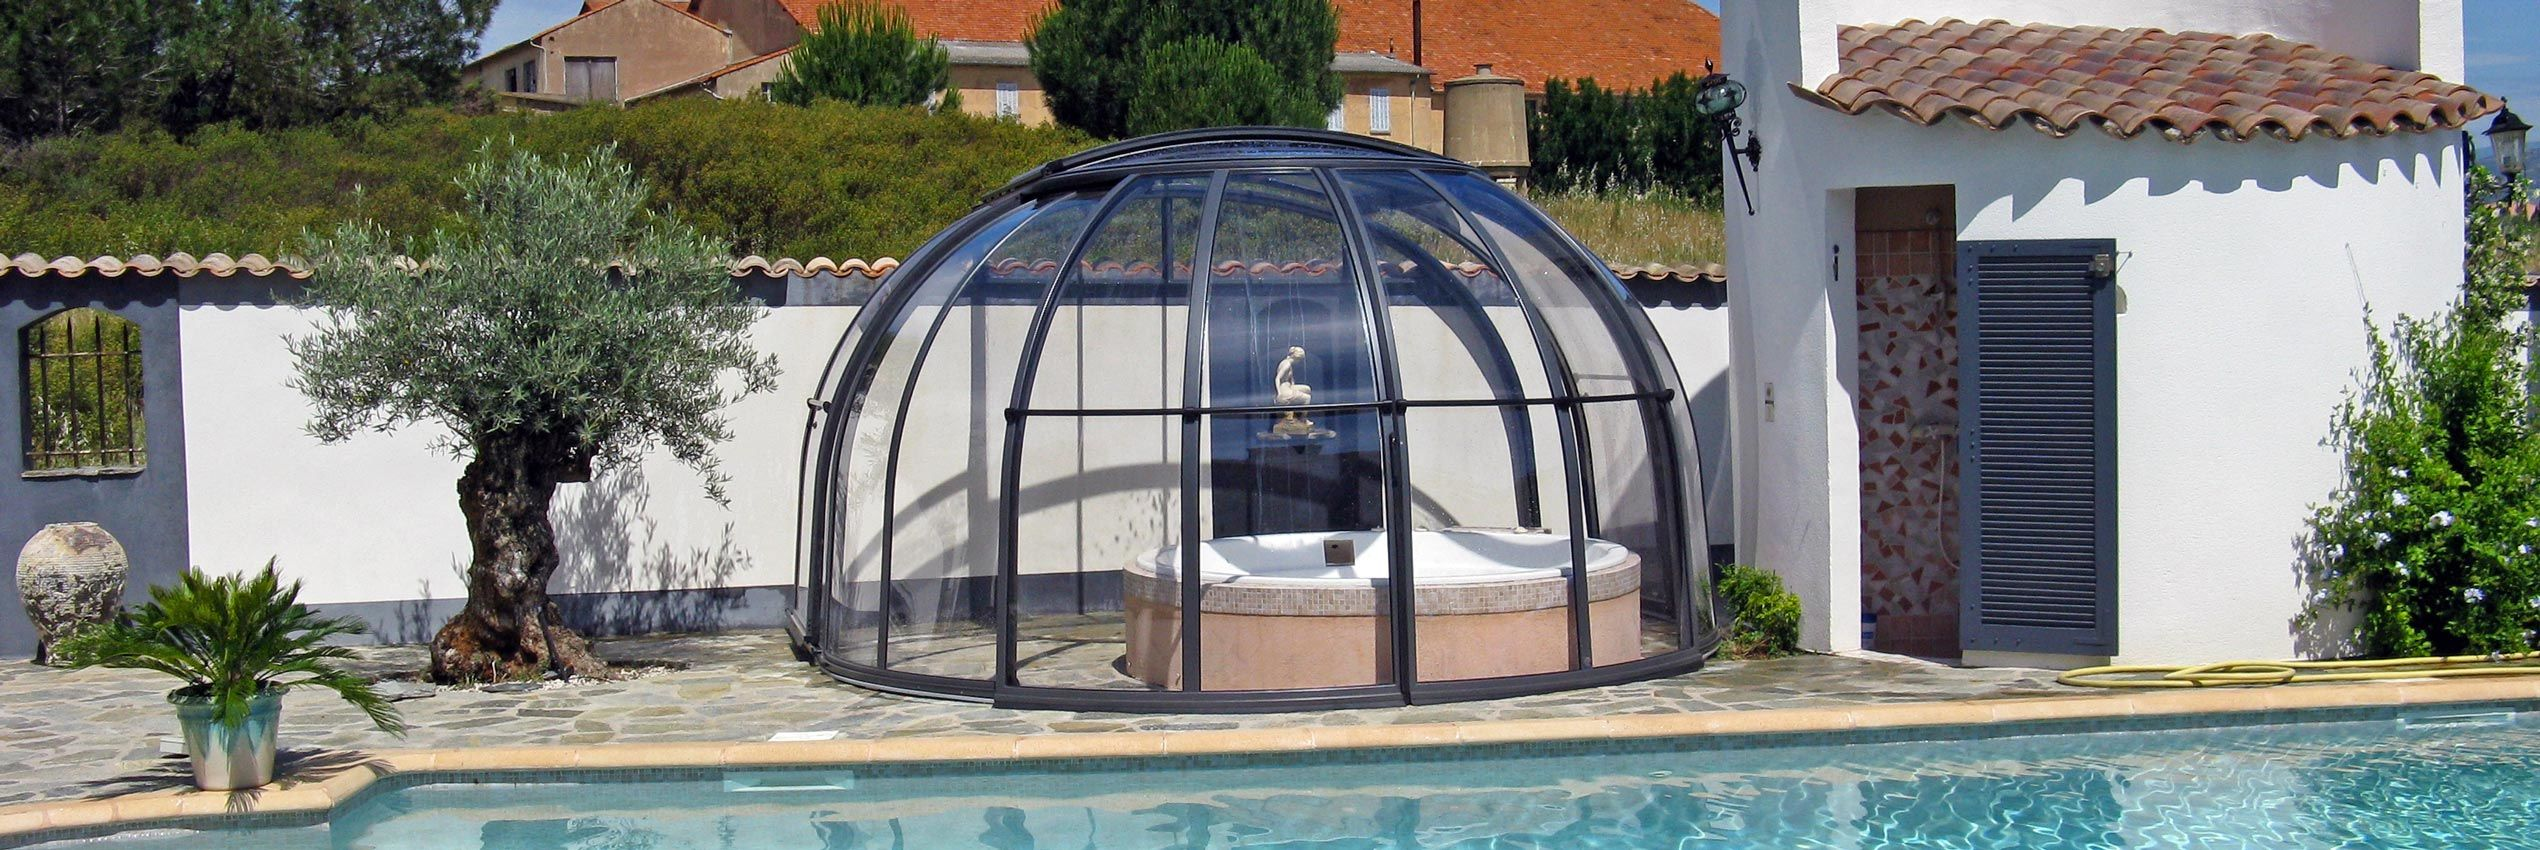 Hottub In De Tuin Axess I Spa Overkappingen Axess Europe